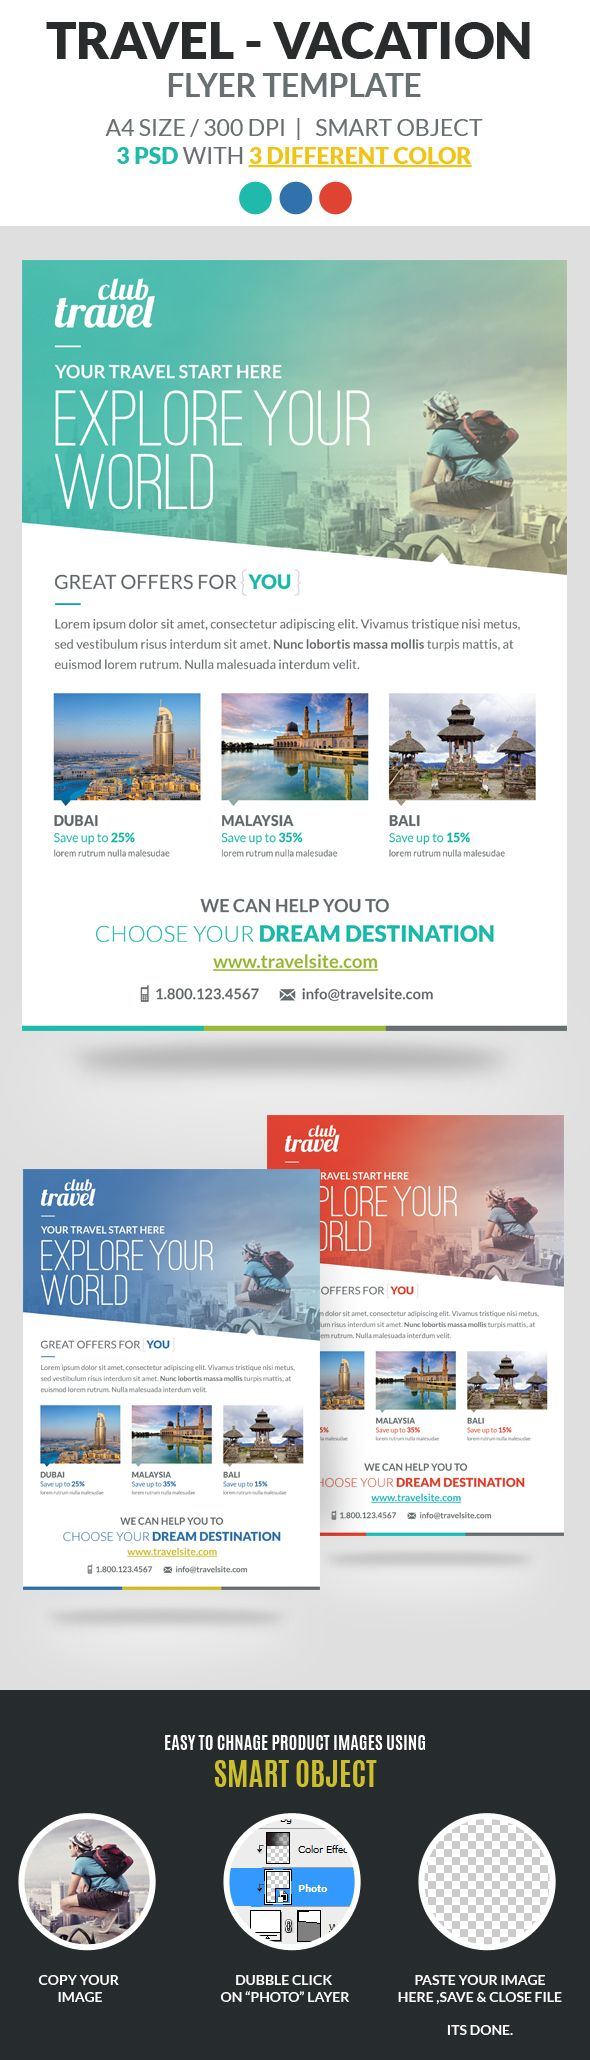 Best Corporate Flyer Template Images On   Corporate